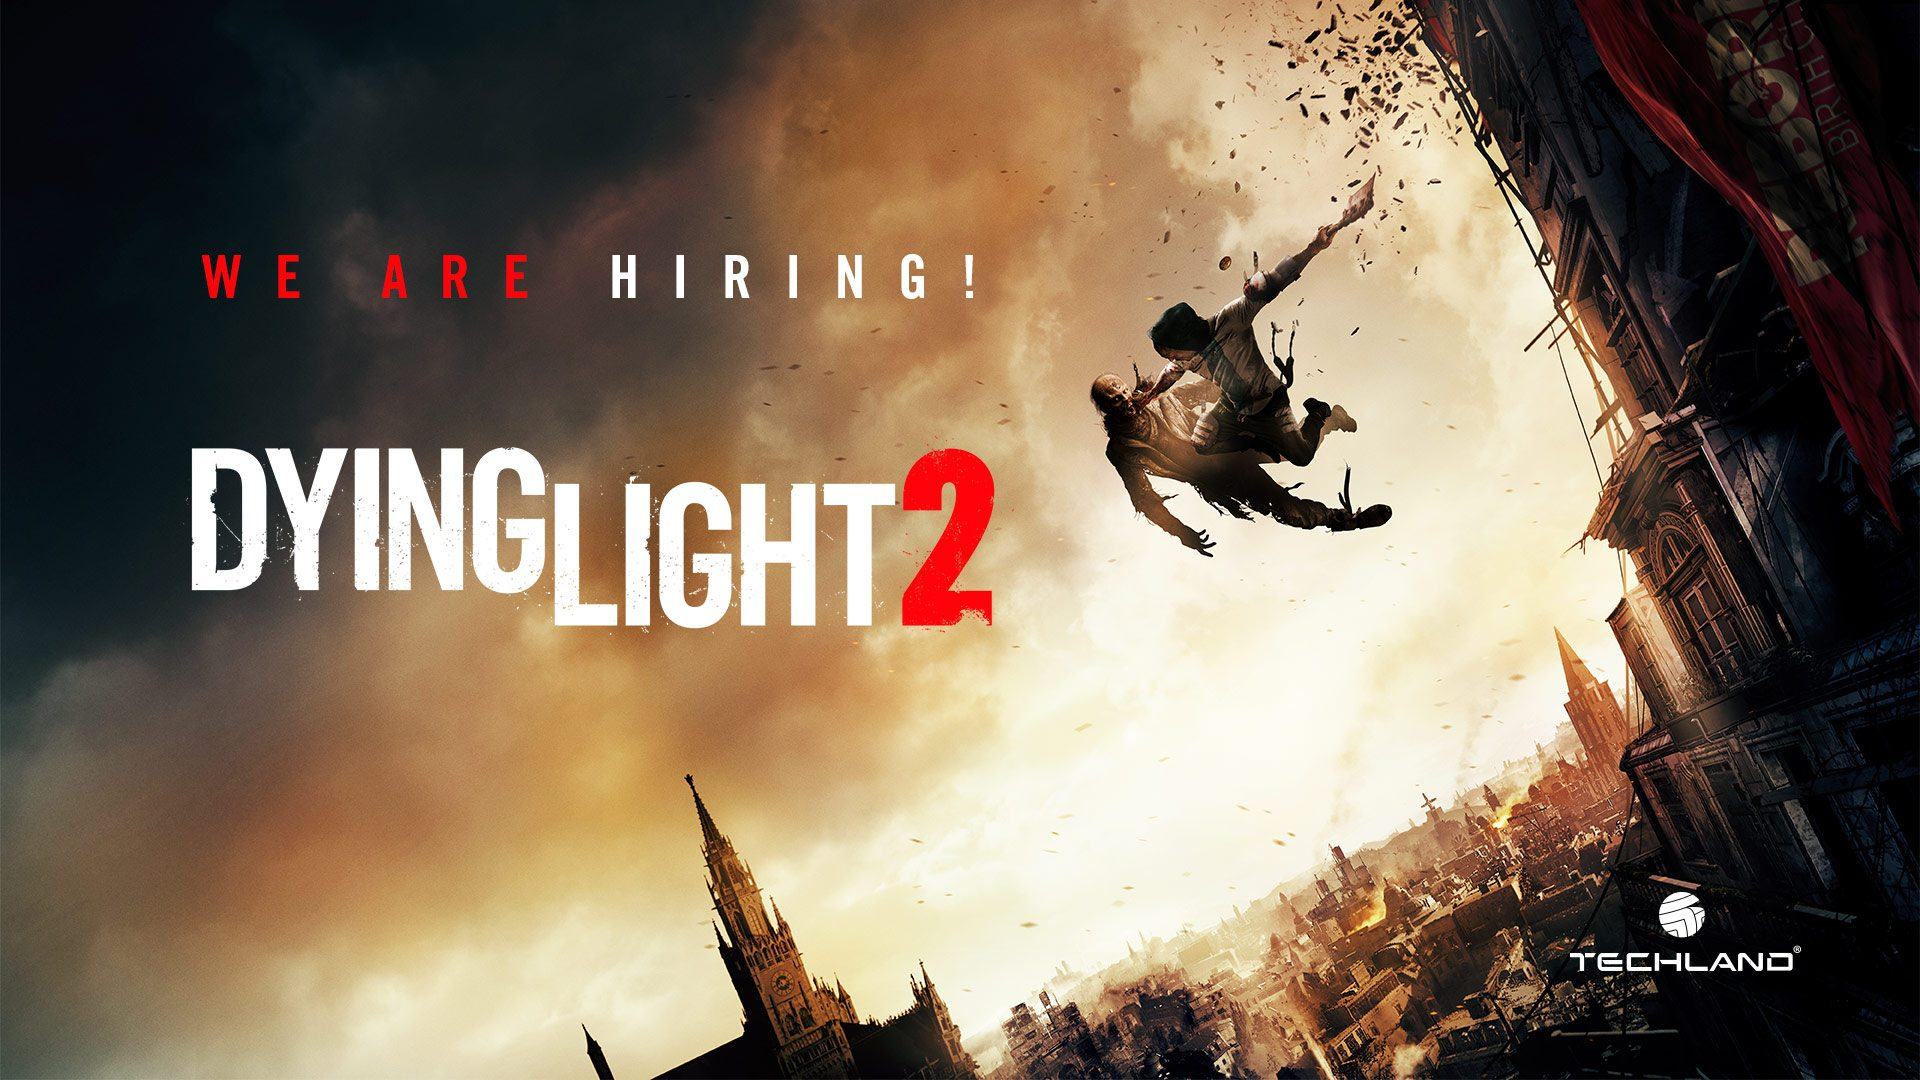 Dying Light 2 - We are hiring!